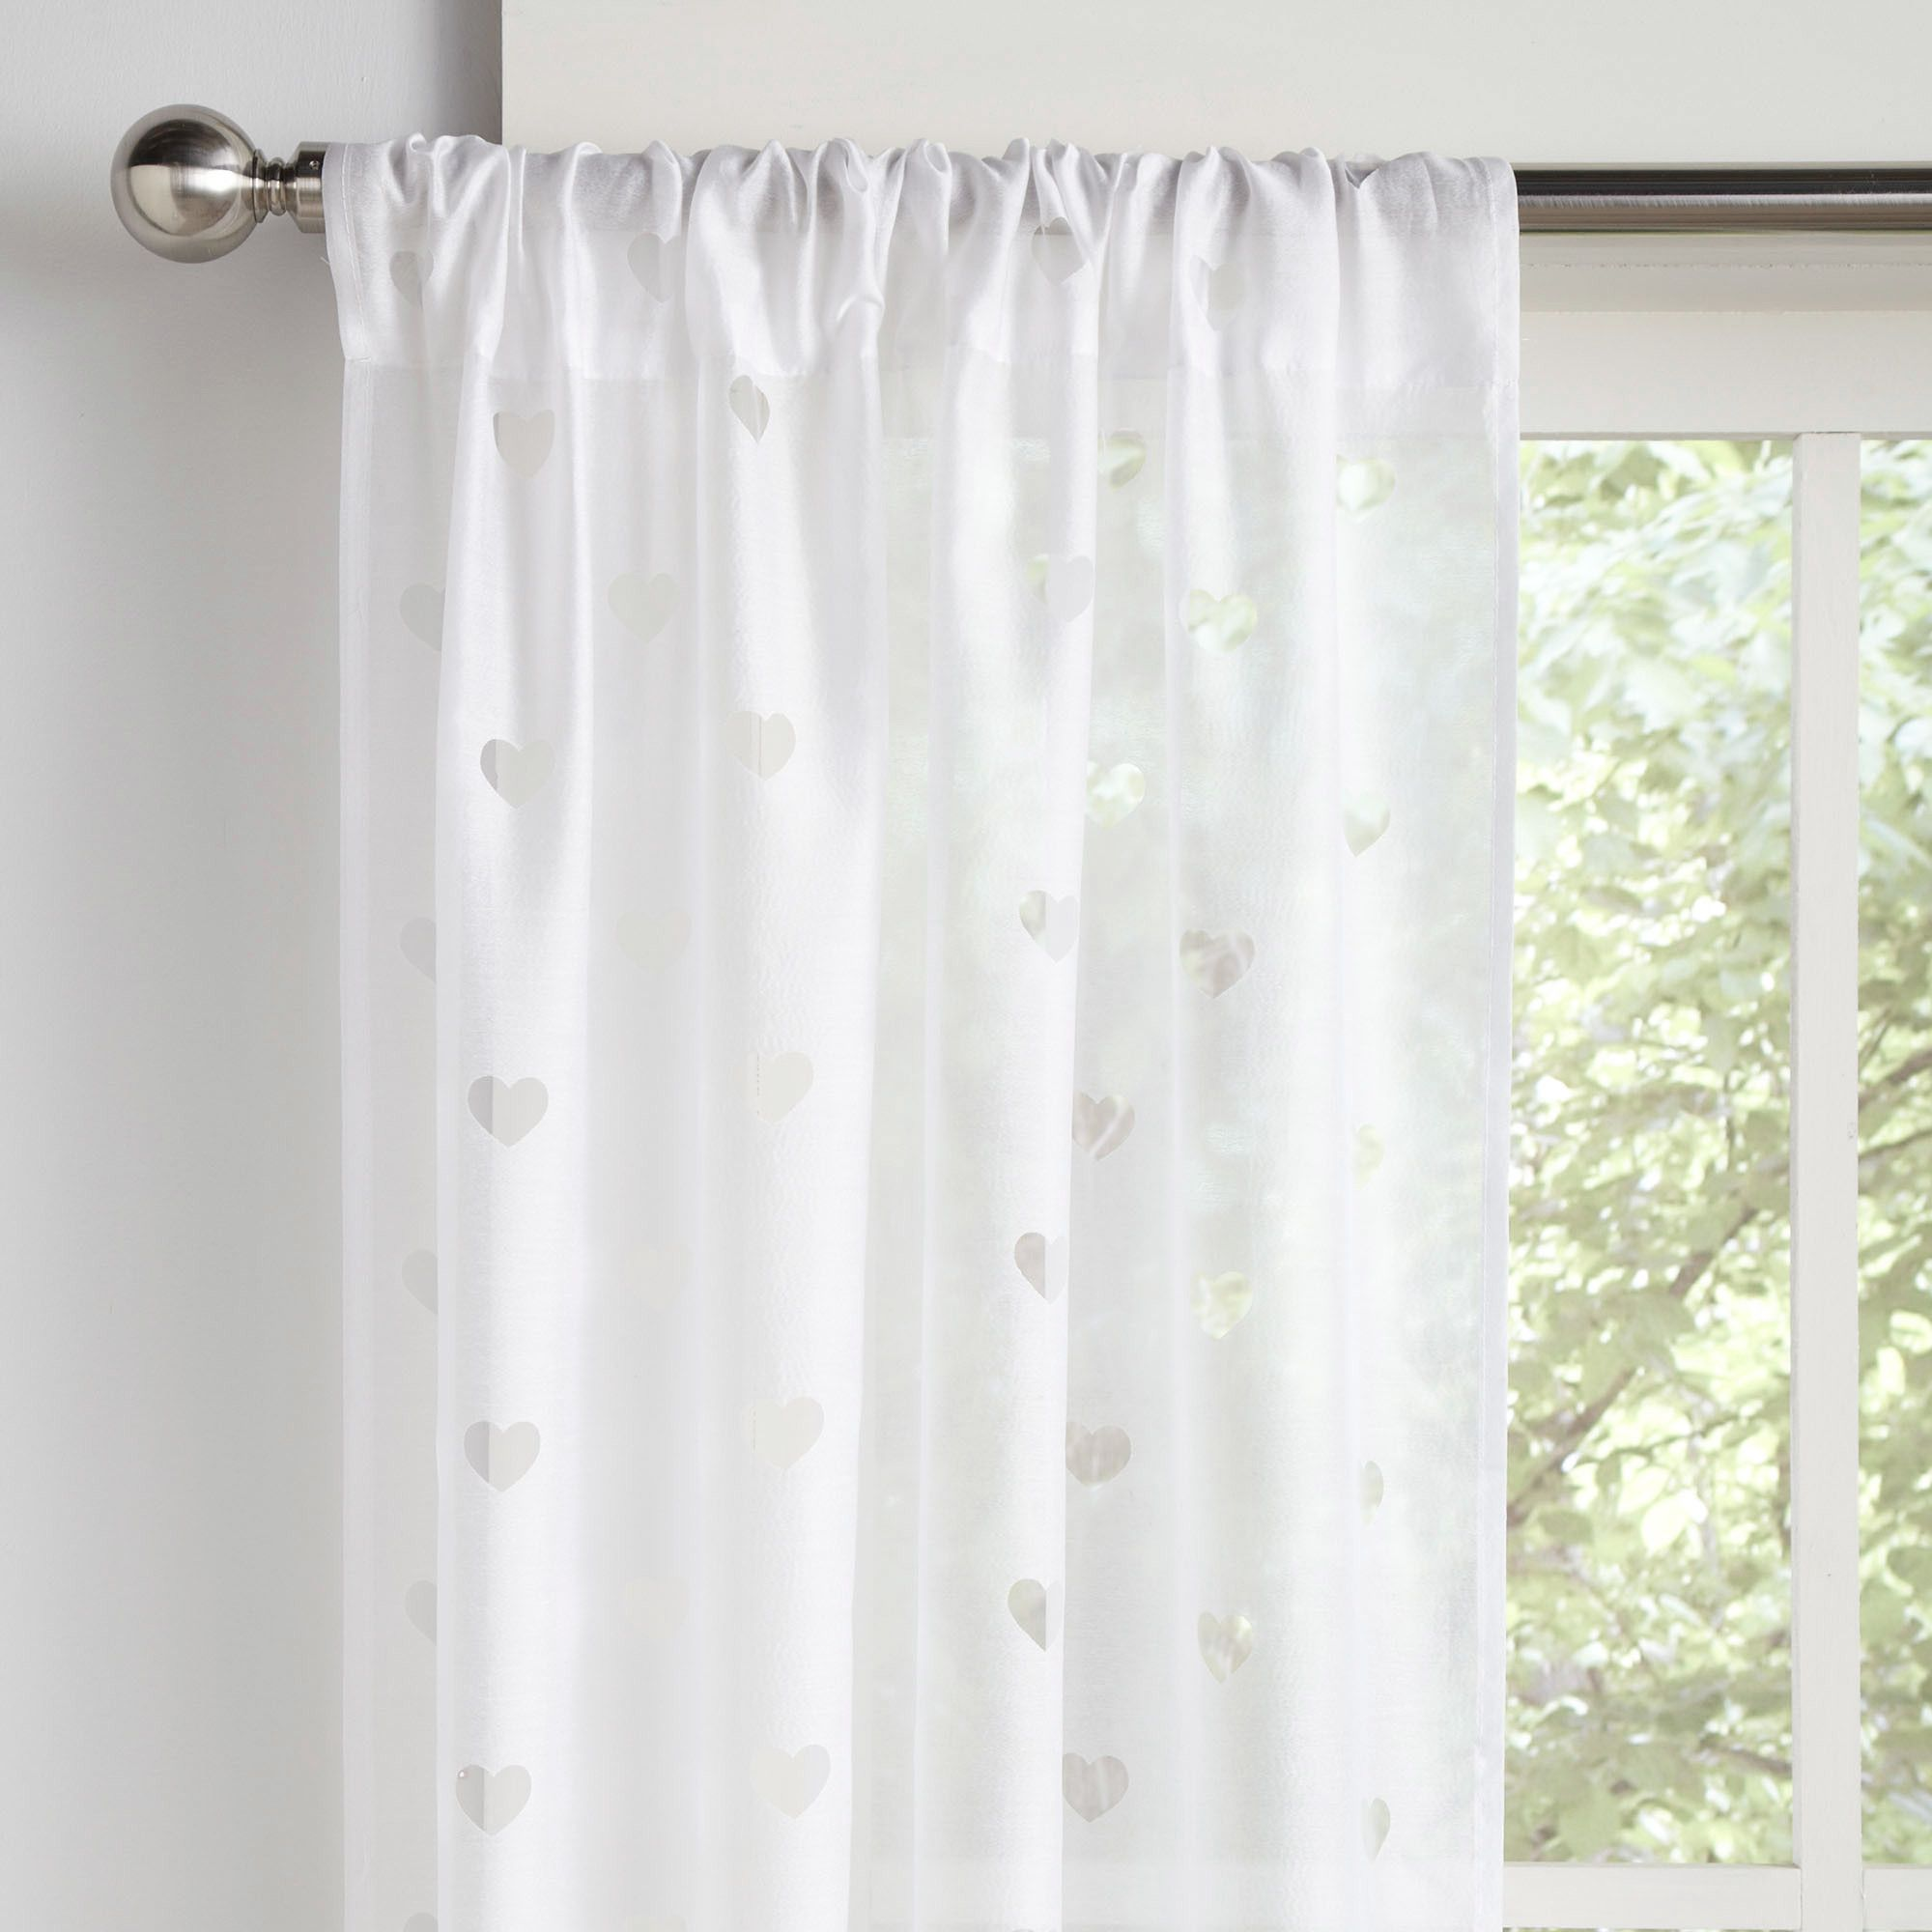 Dreamer Love It Sheer Curtains These Sheer Curtains Offer A